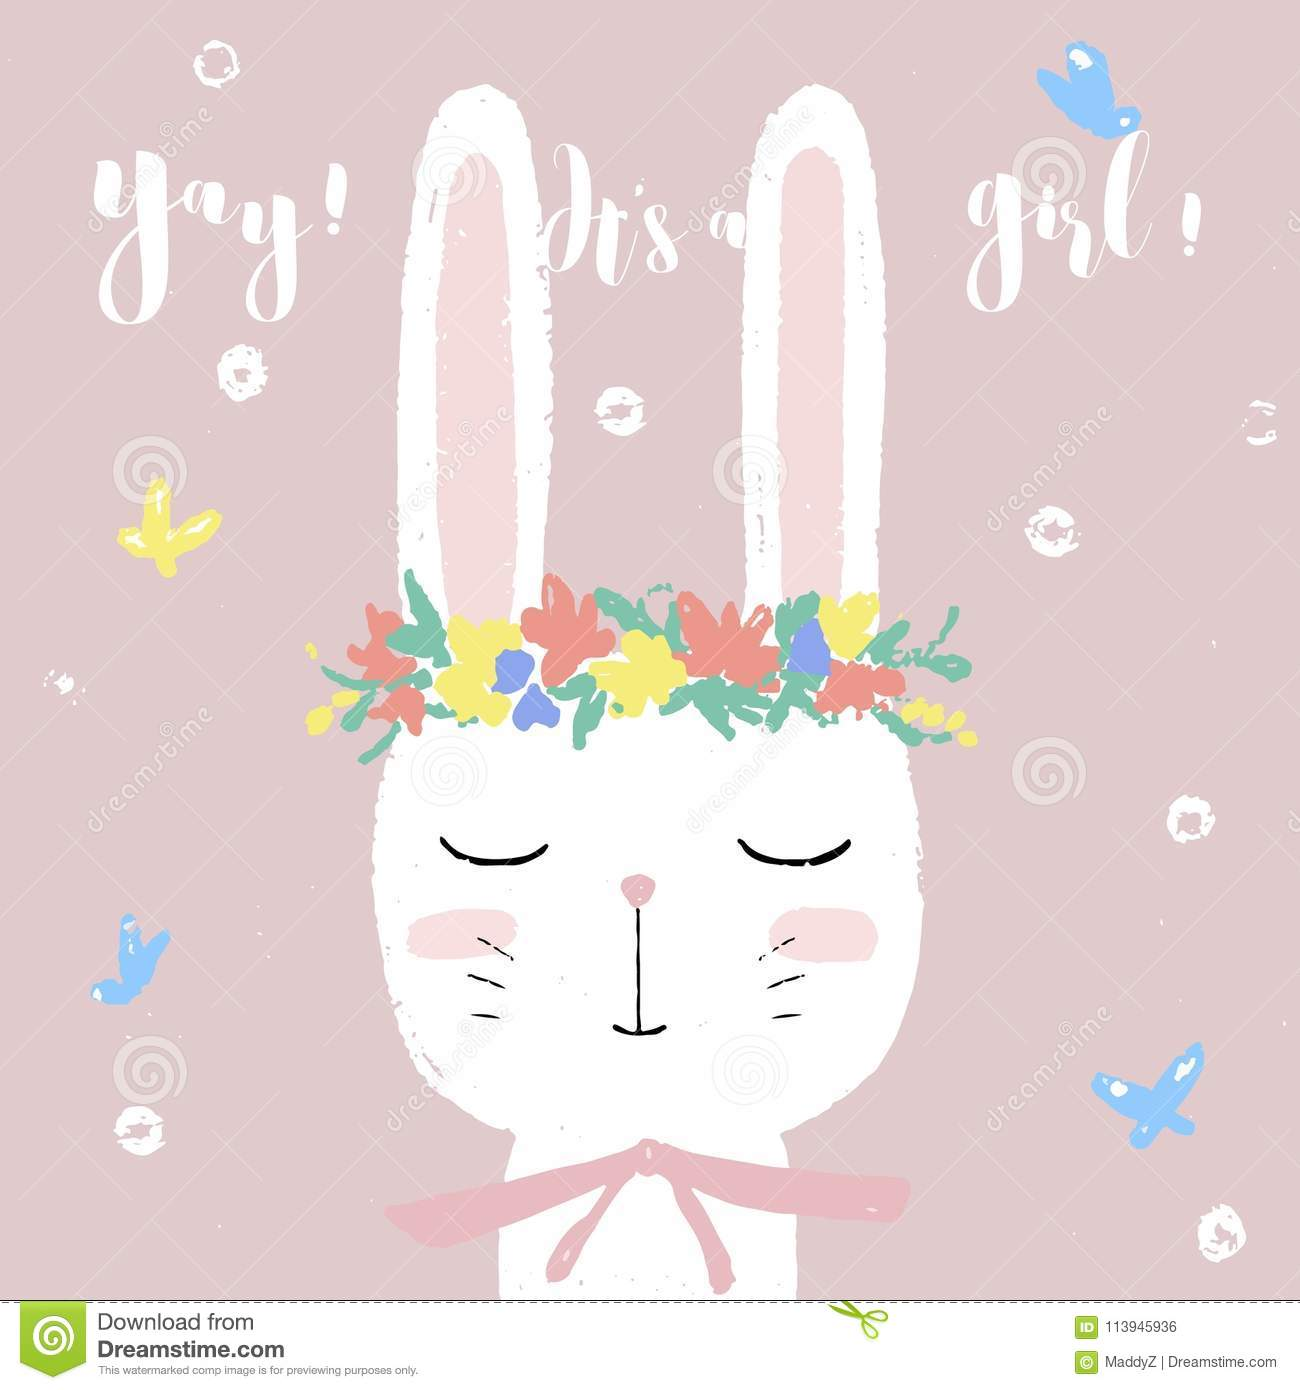 Cute white bunny on baby shower card invitation design template download cute white bunny on baby shower card invitation design template stock vector illustration filmwisefo